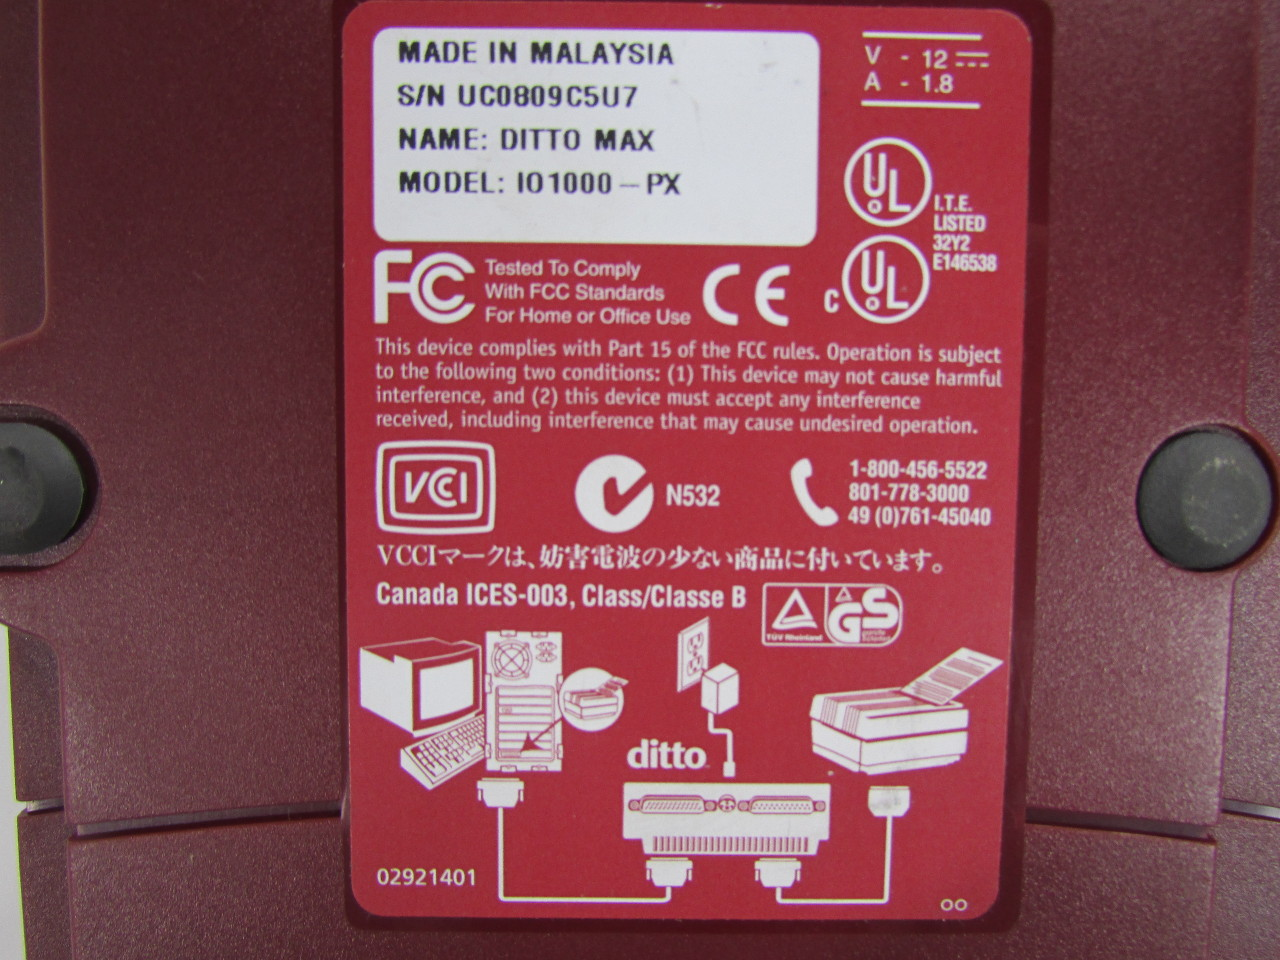 Details about IOMEGA DITTO MAX IO1000-PX EXTERNAL BACKUP STORAGE DRIVE